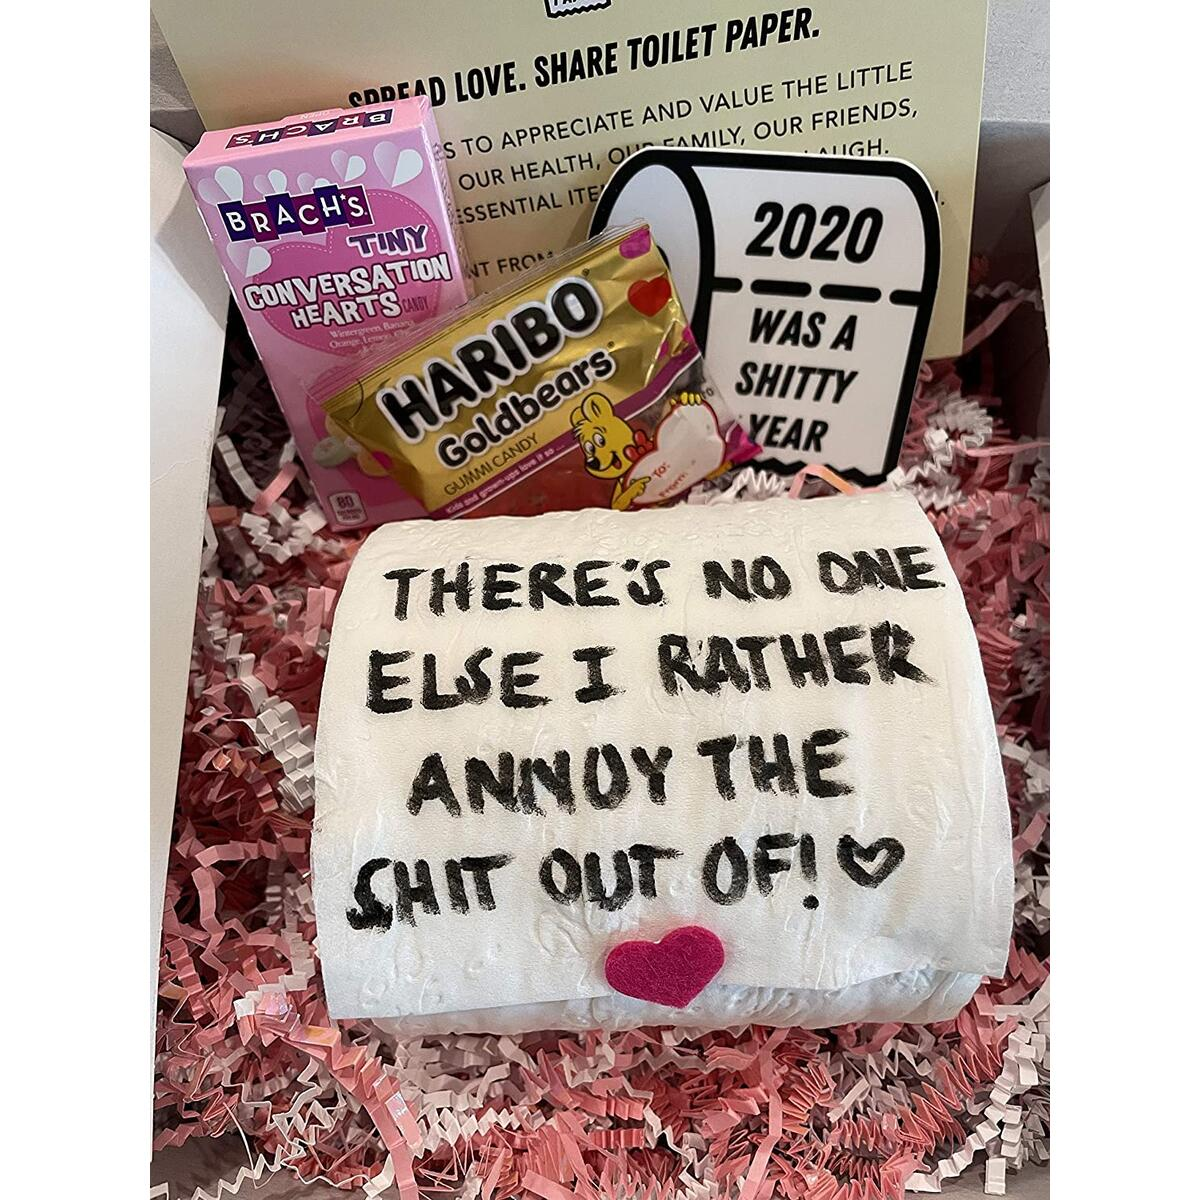 The Valentine's Day Gift Package, 1 Toilet Paper Roll with Custom Message